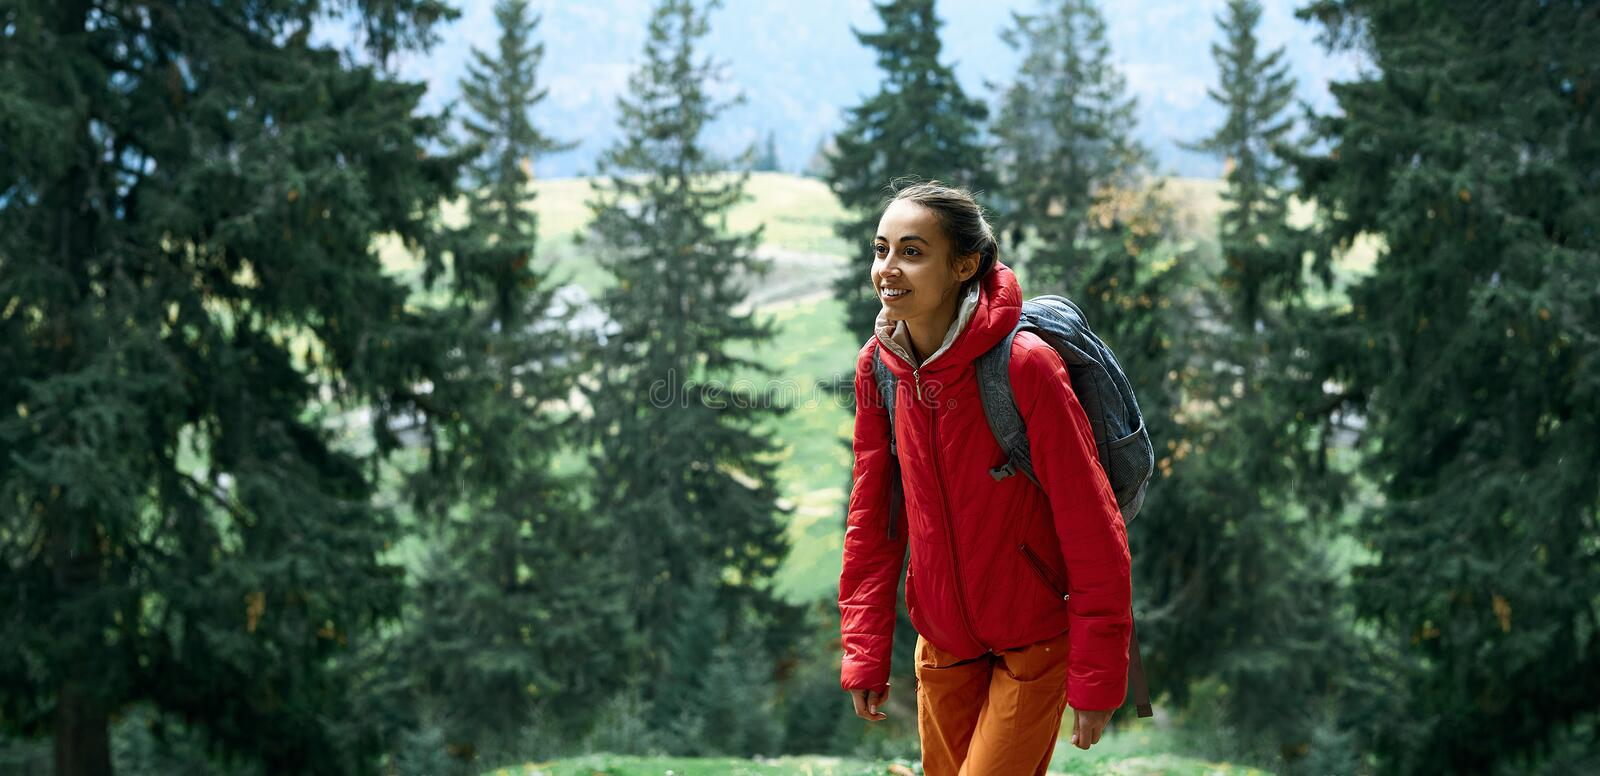 Woman hiker with small backpack wearing in red jacket and orange pants walks by trail through pine woods in the royalty free stock image